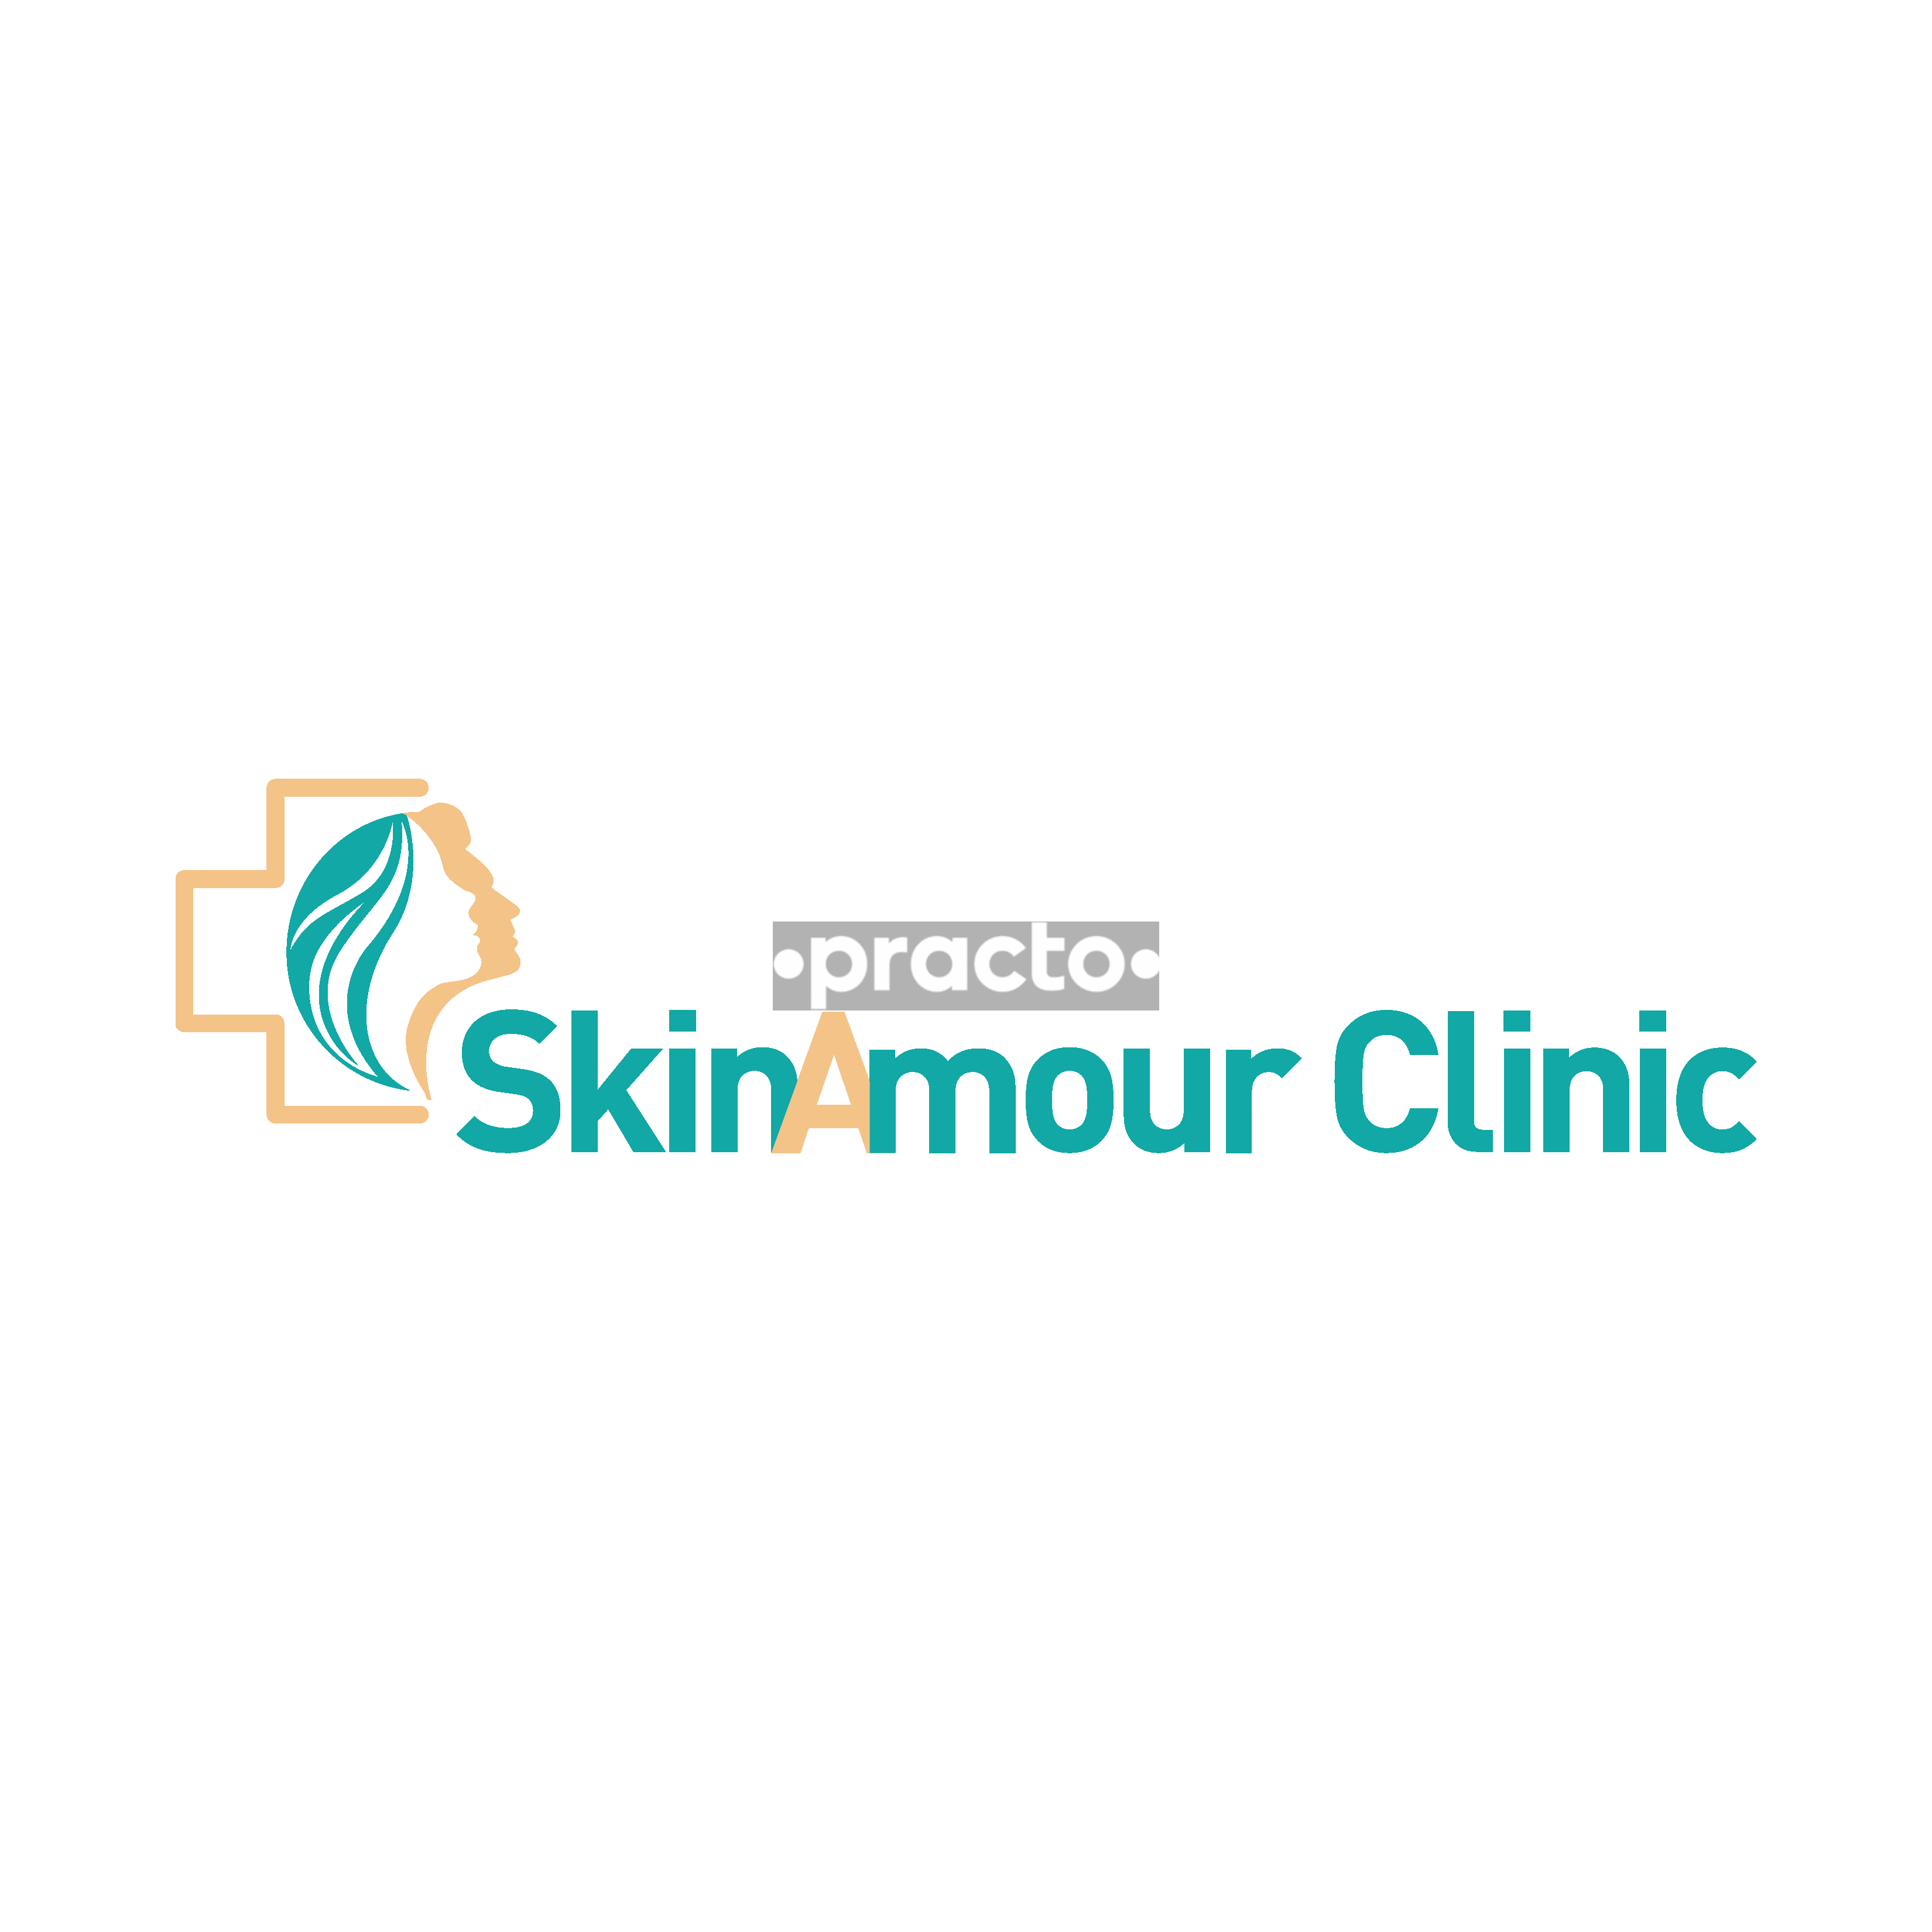 SkinAmour Clinic